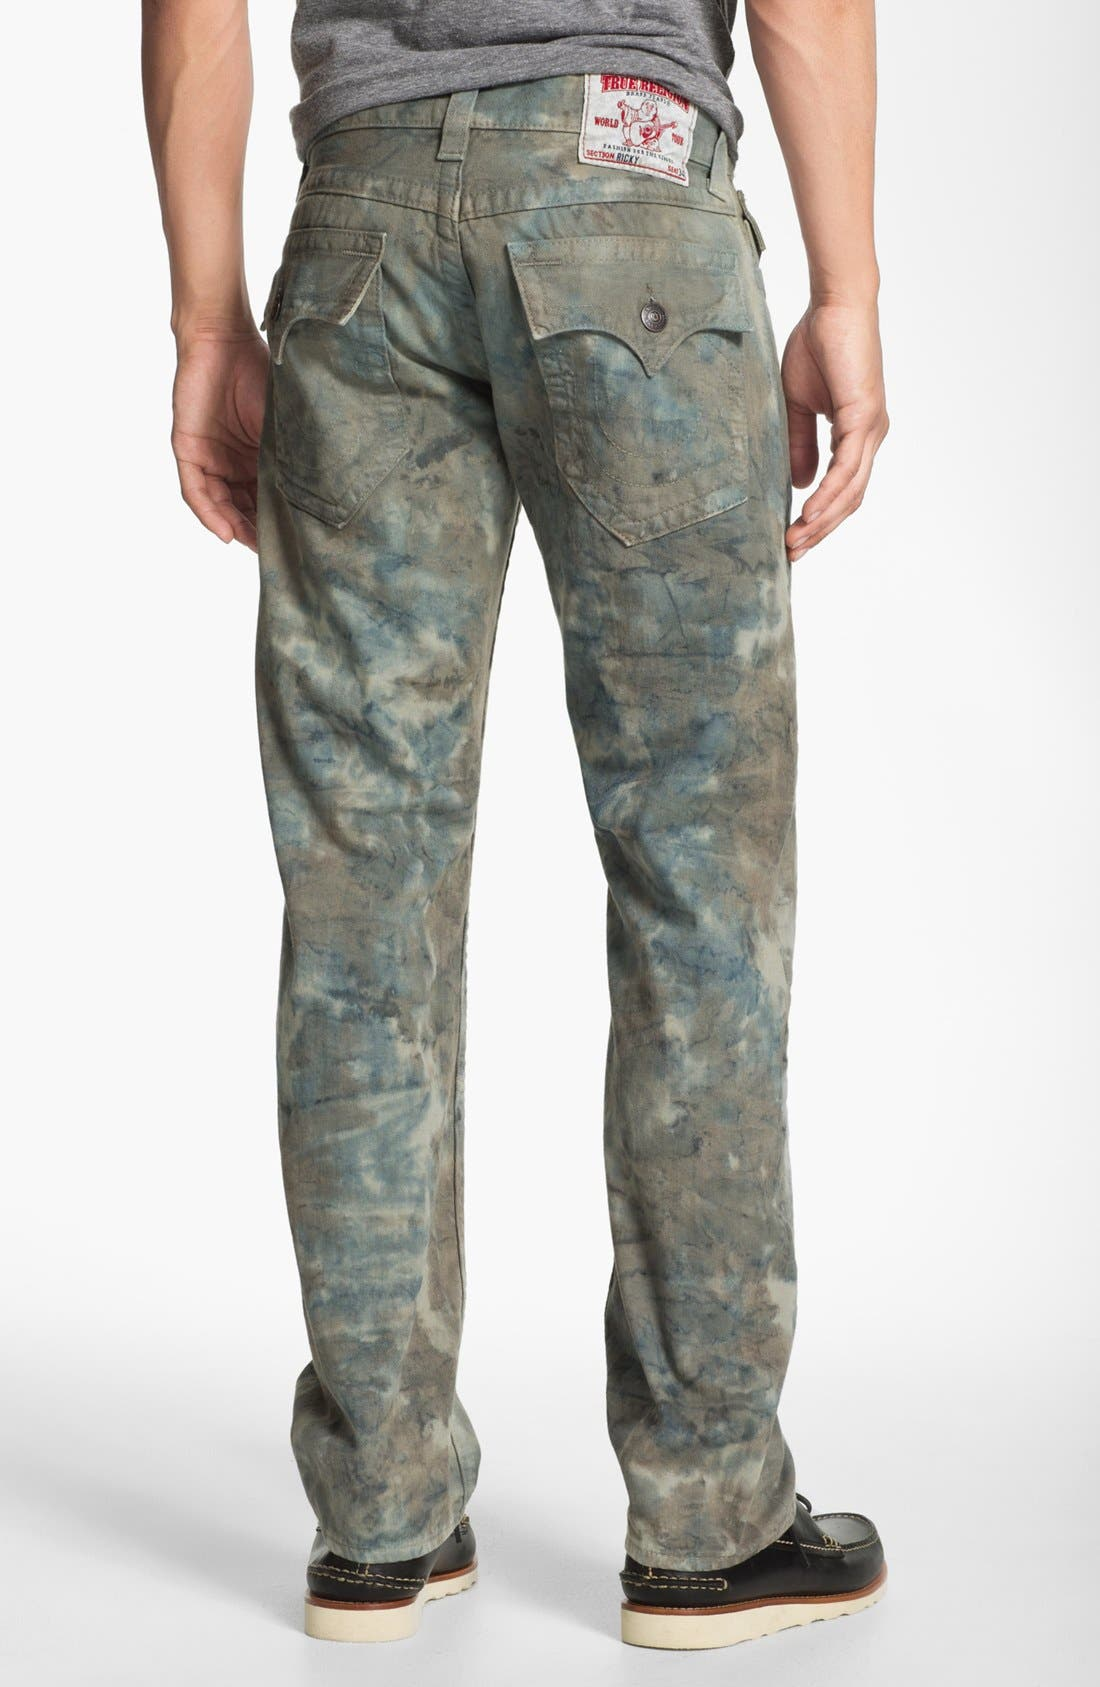 Alternate Image 1 Selected - True Religion Brand Jeans 'Ricky' Straight Leg Jeans (Olive)